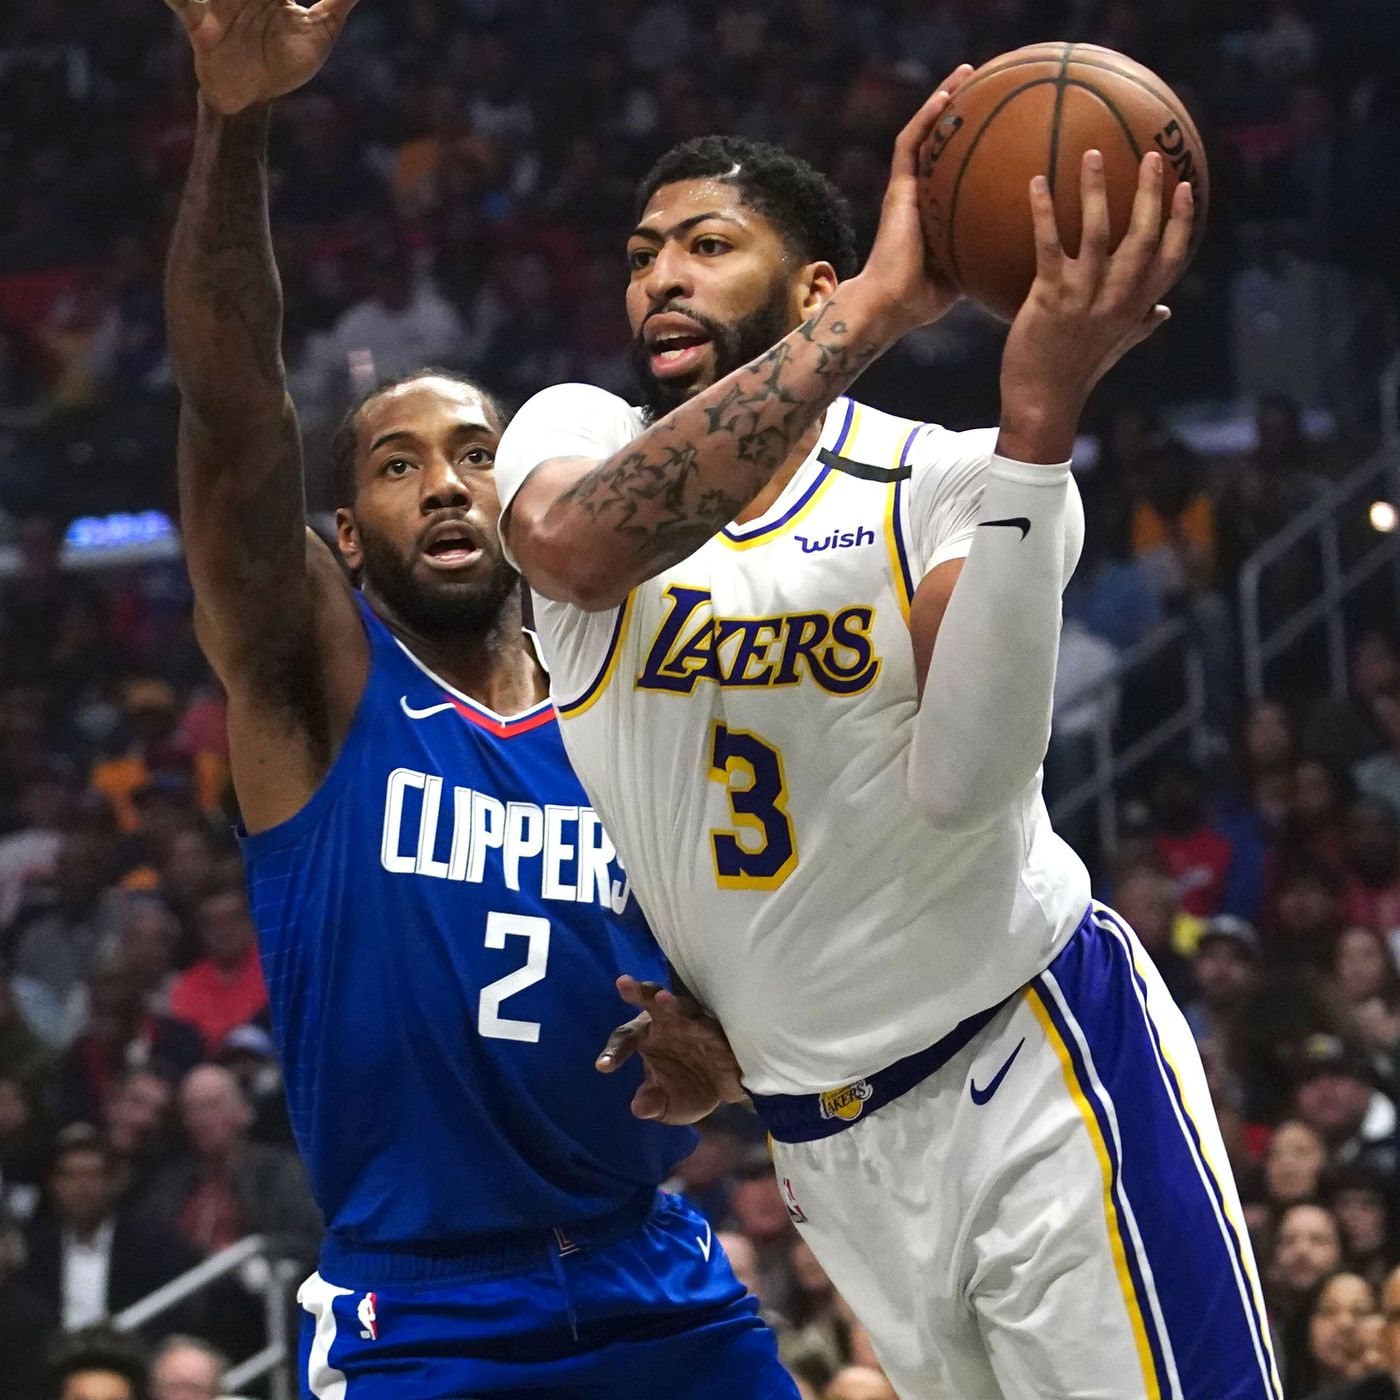 Lakers Vs Clippers Score Lebron James Anthony Davis Lead Way In Win Draftkings Nation